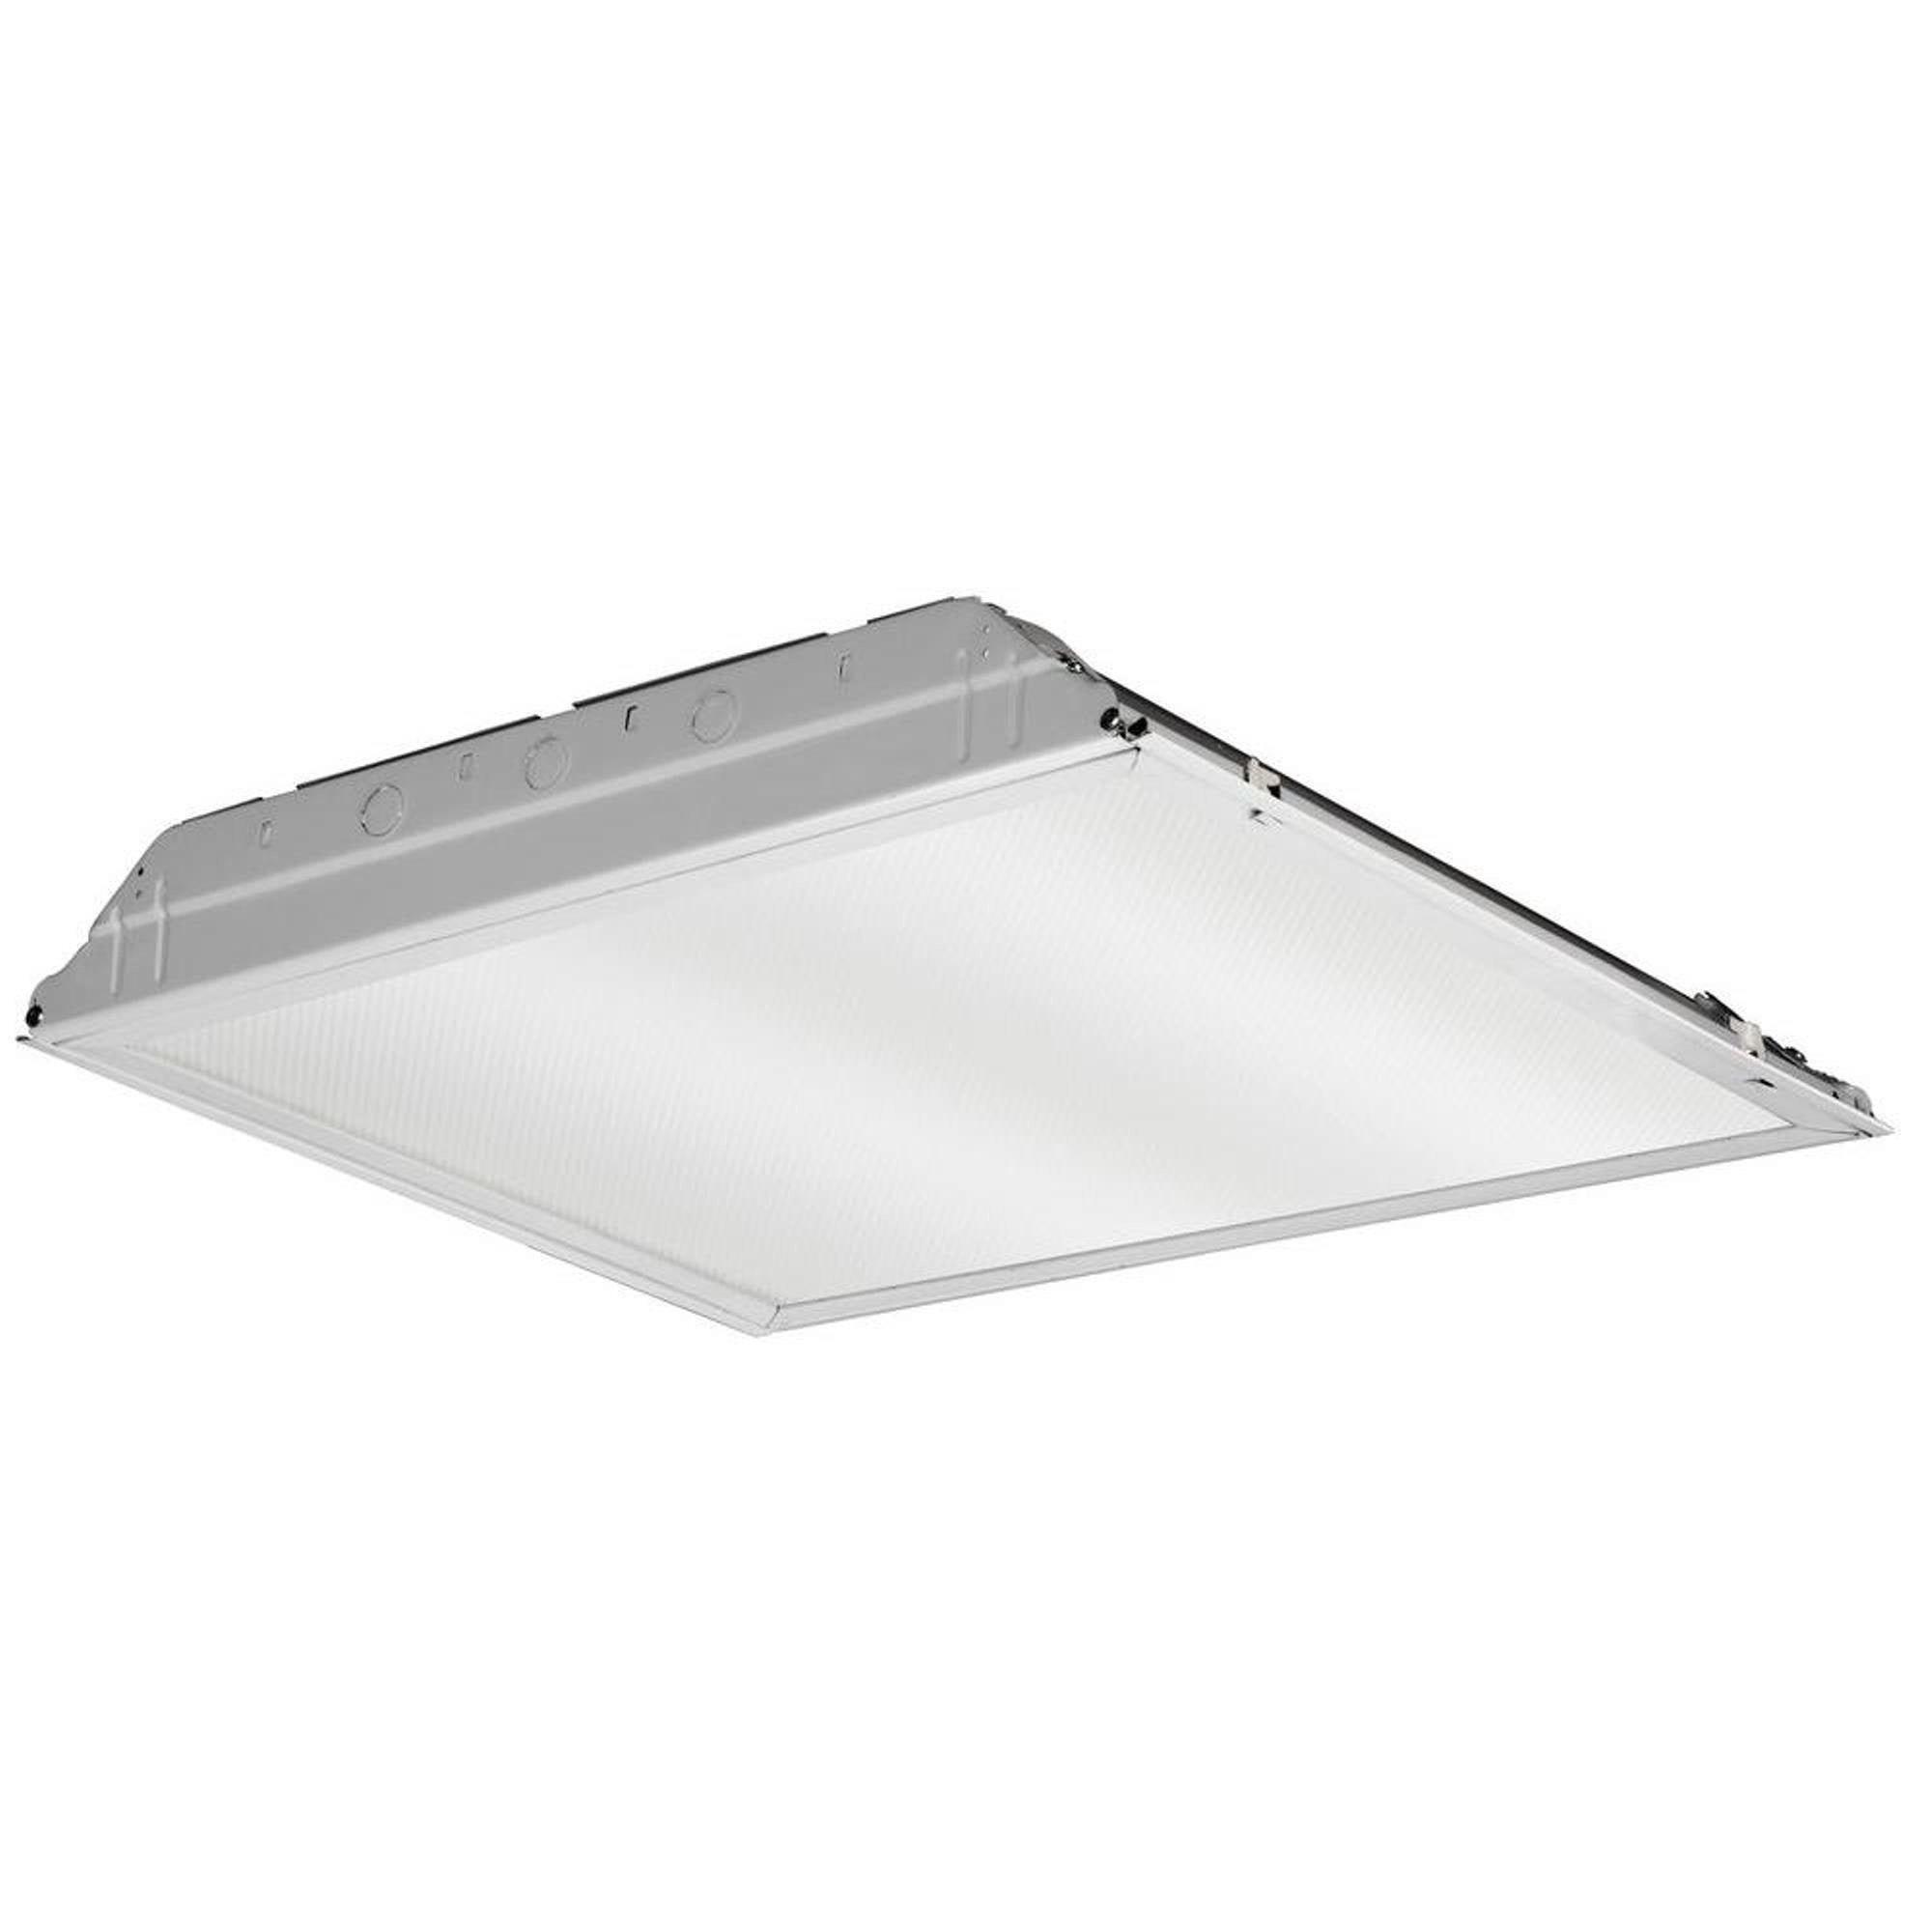 Lithonia Lighting White 2-foot 4,000K LED Lay-in Troffer ...